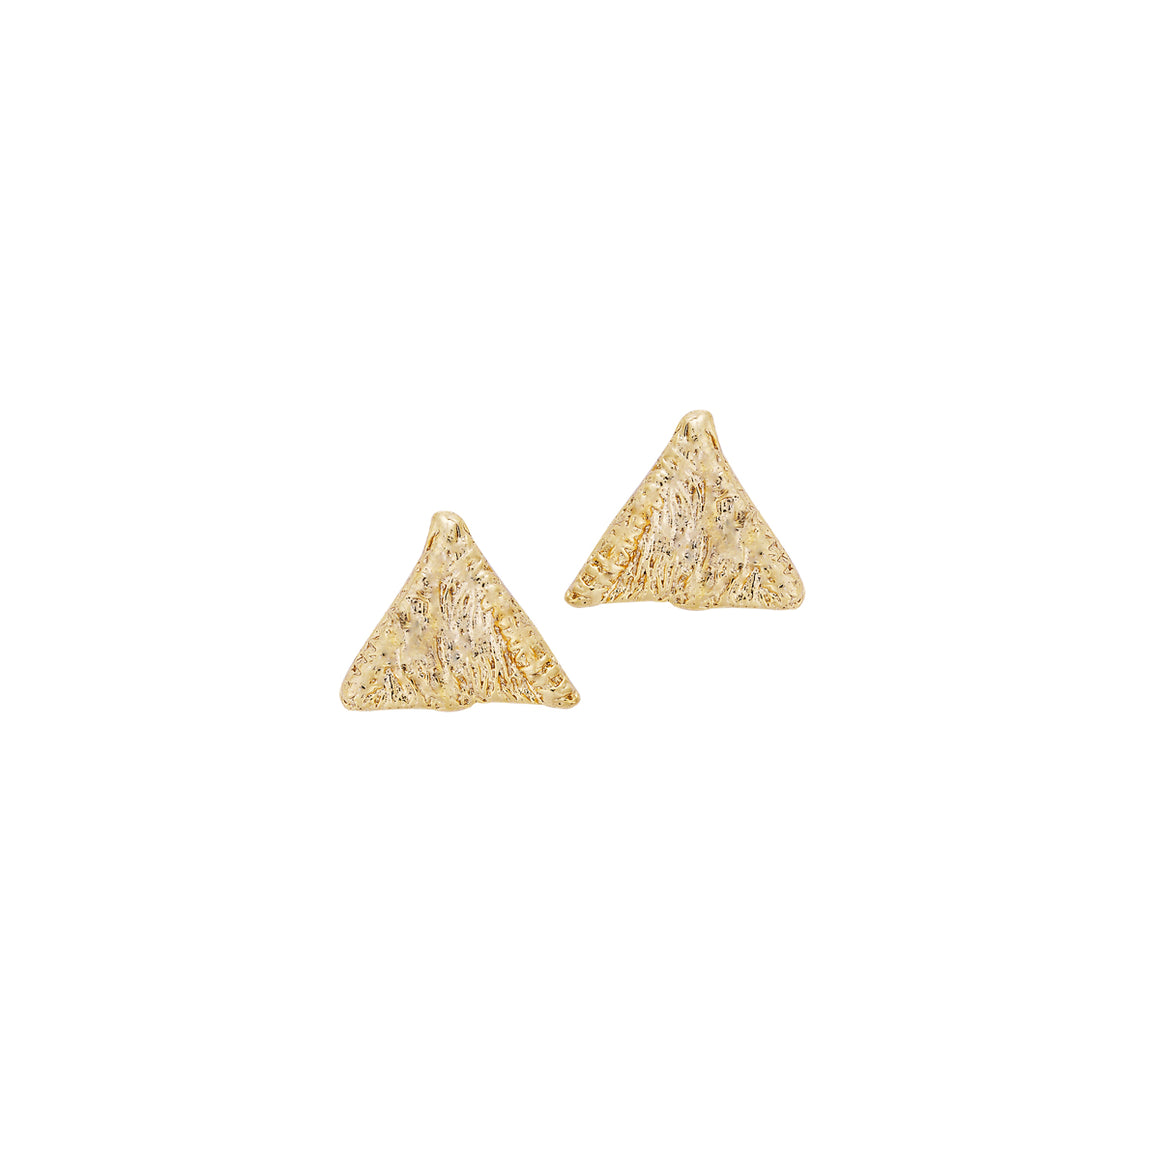 Tri stud earrings-gold-designed by alexandra koumba